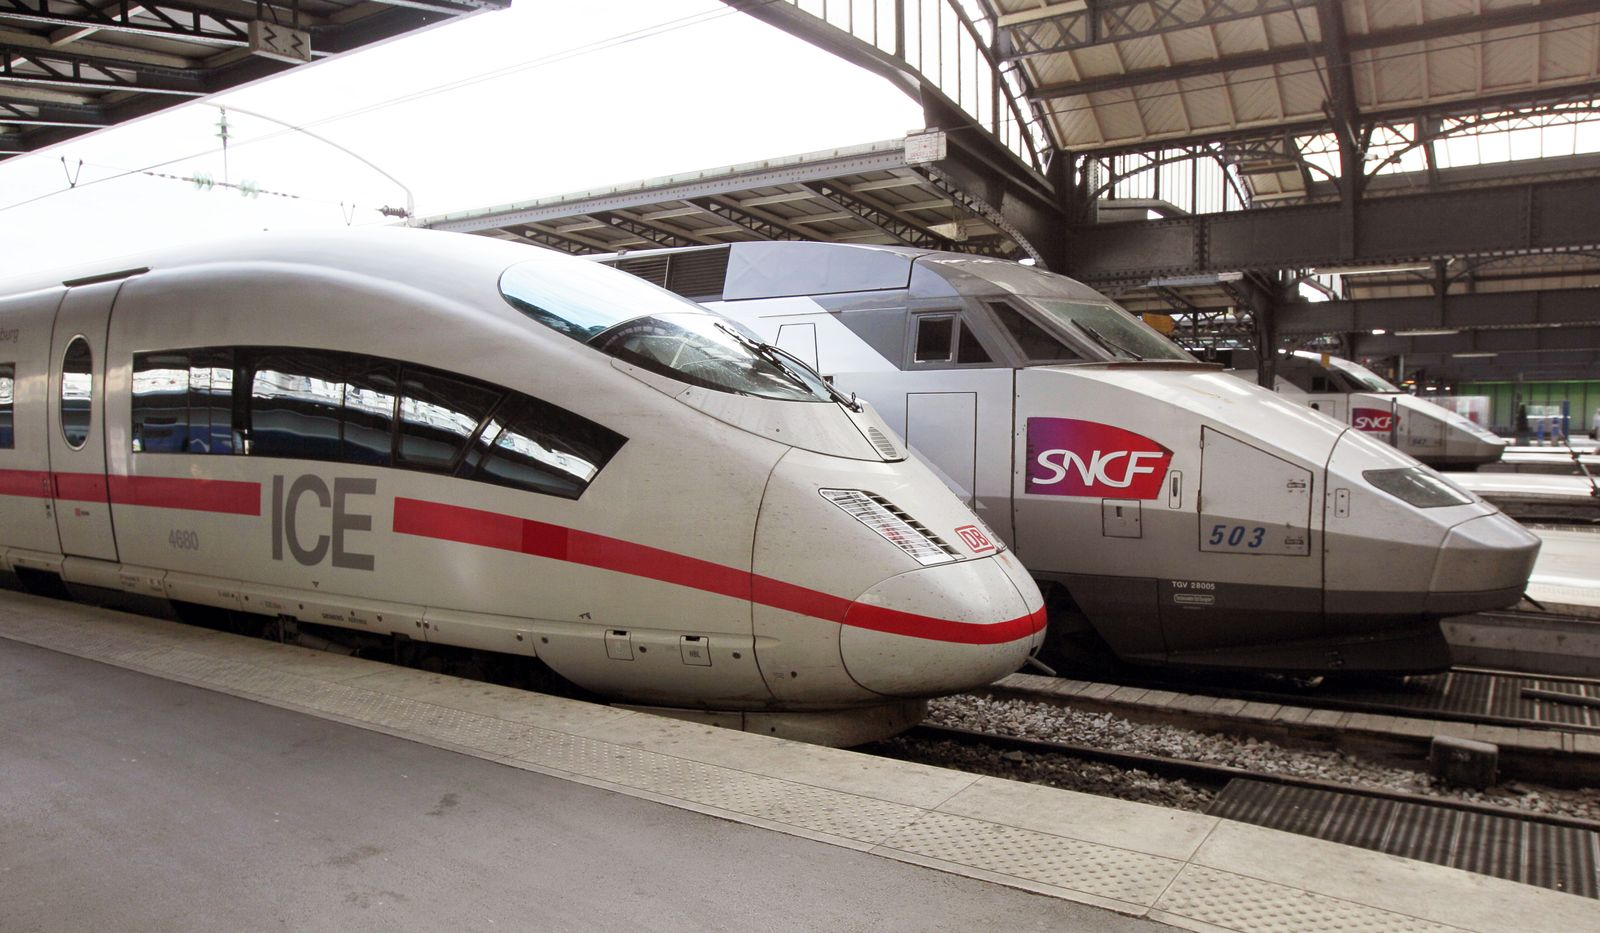 ICE Generation / TGV